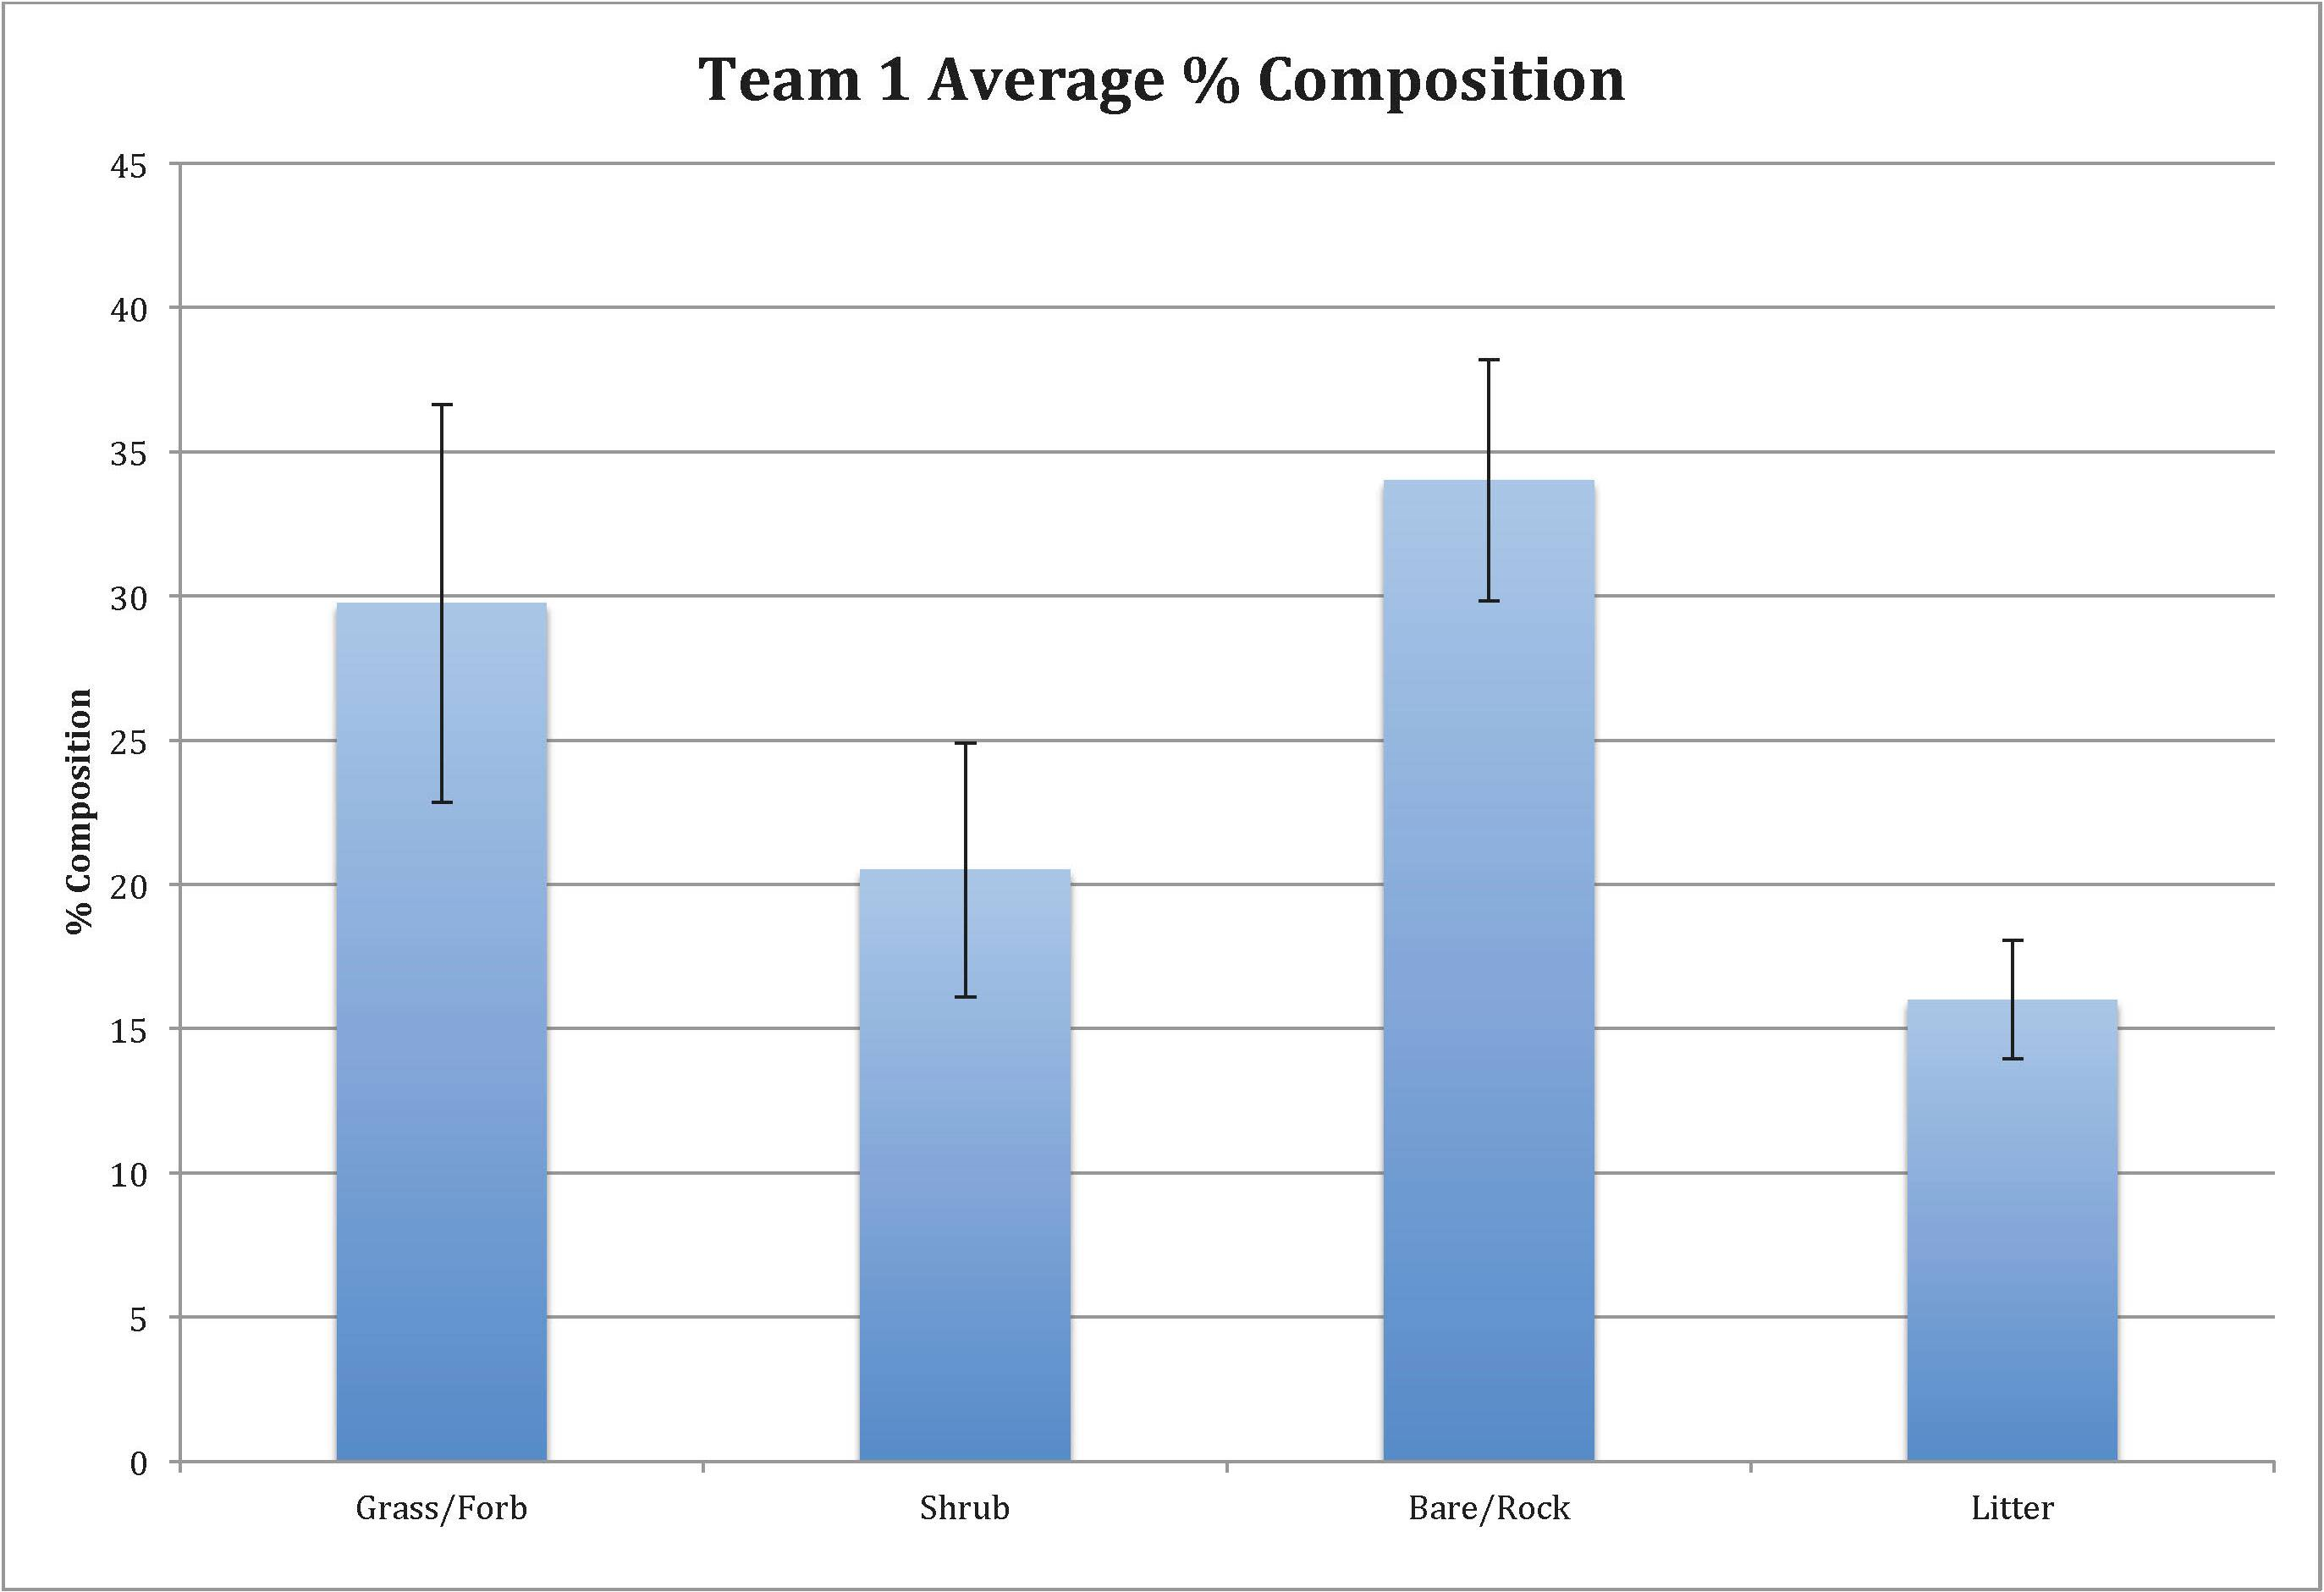 team 1 average percent composition graph